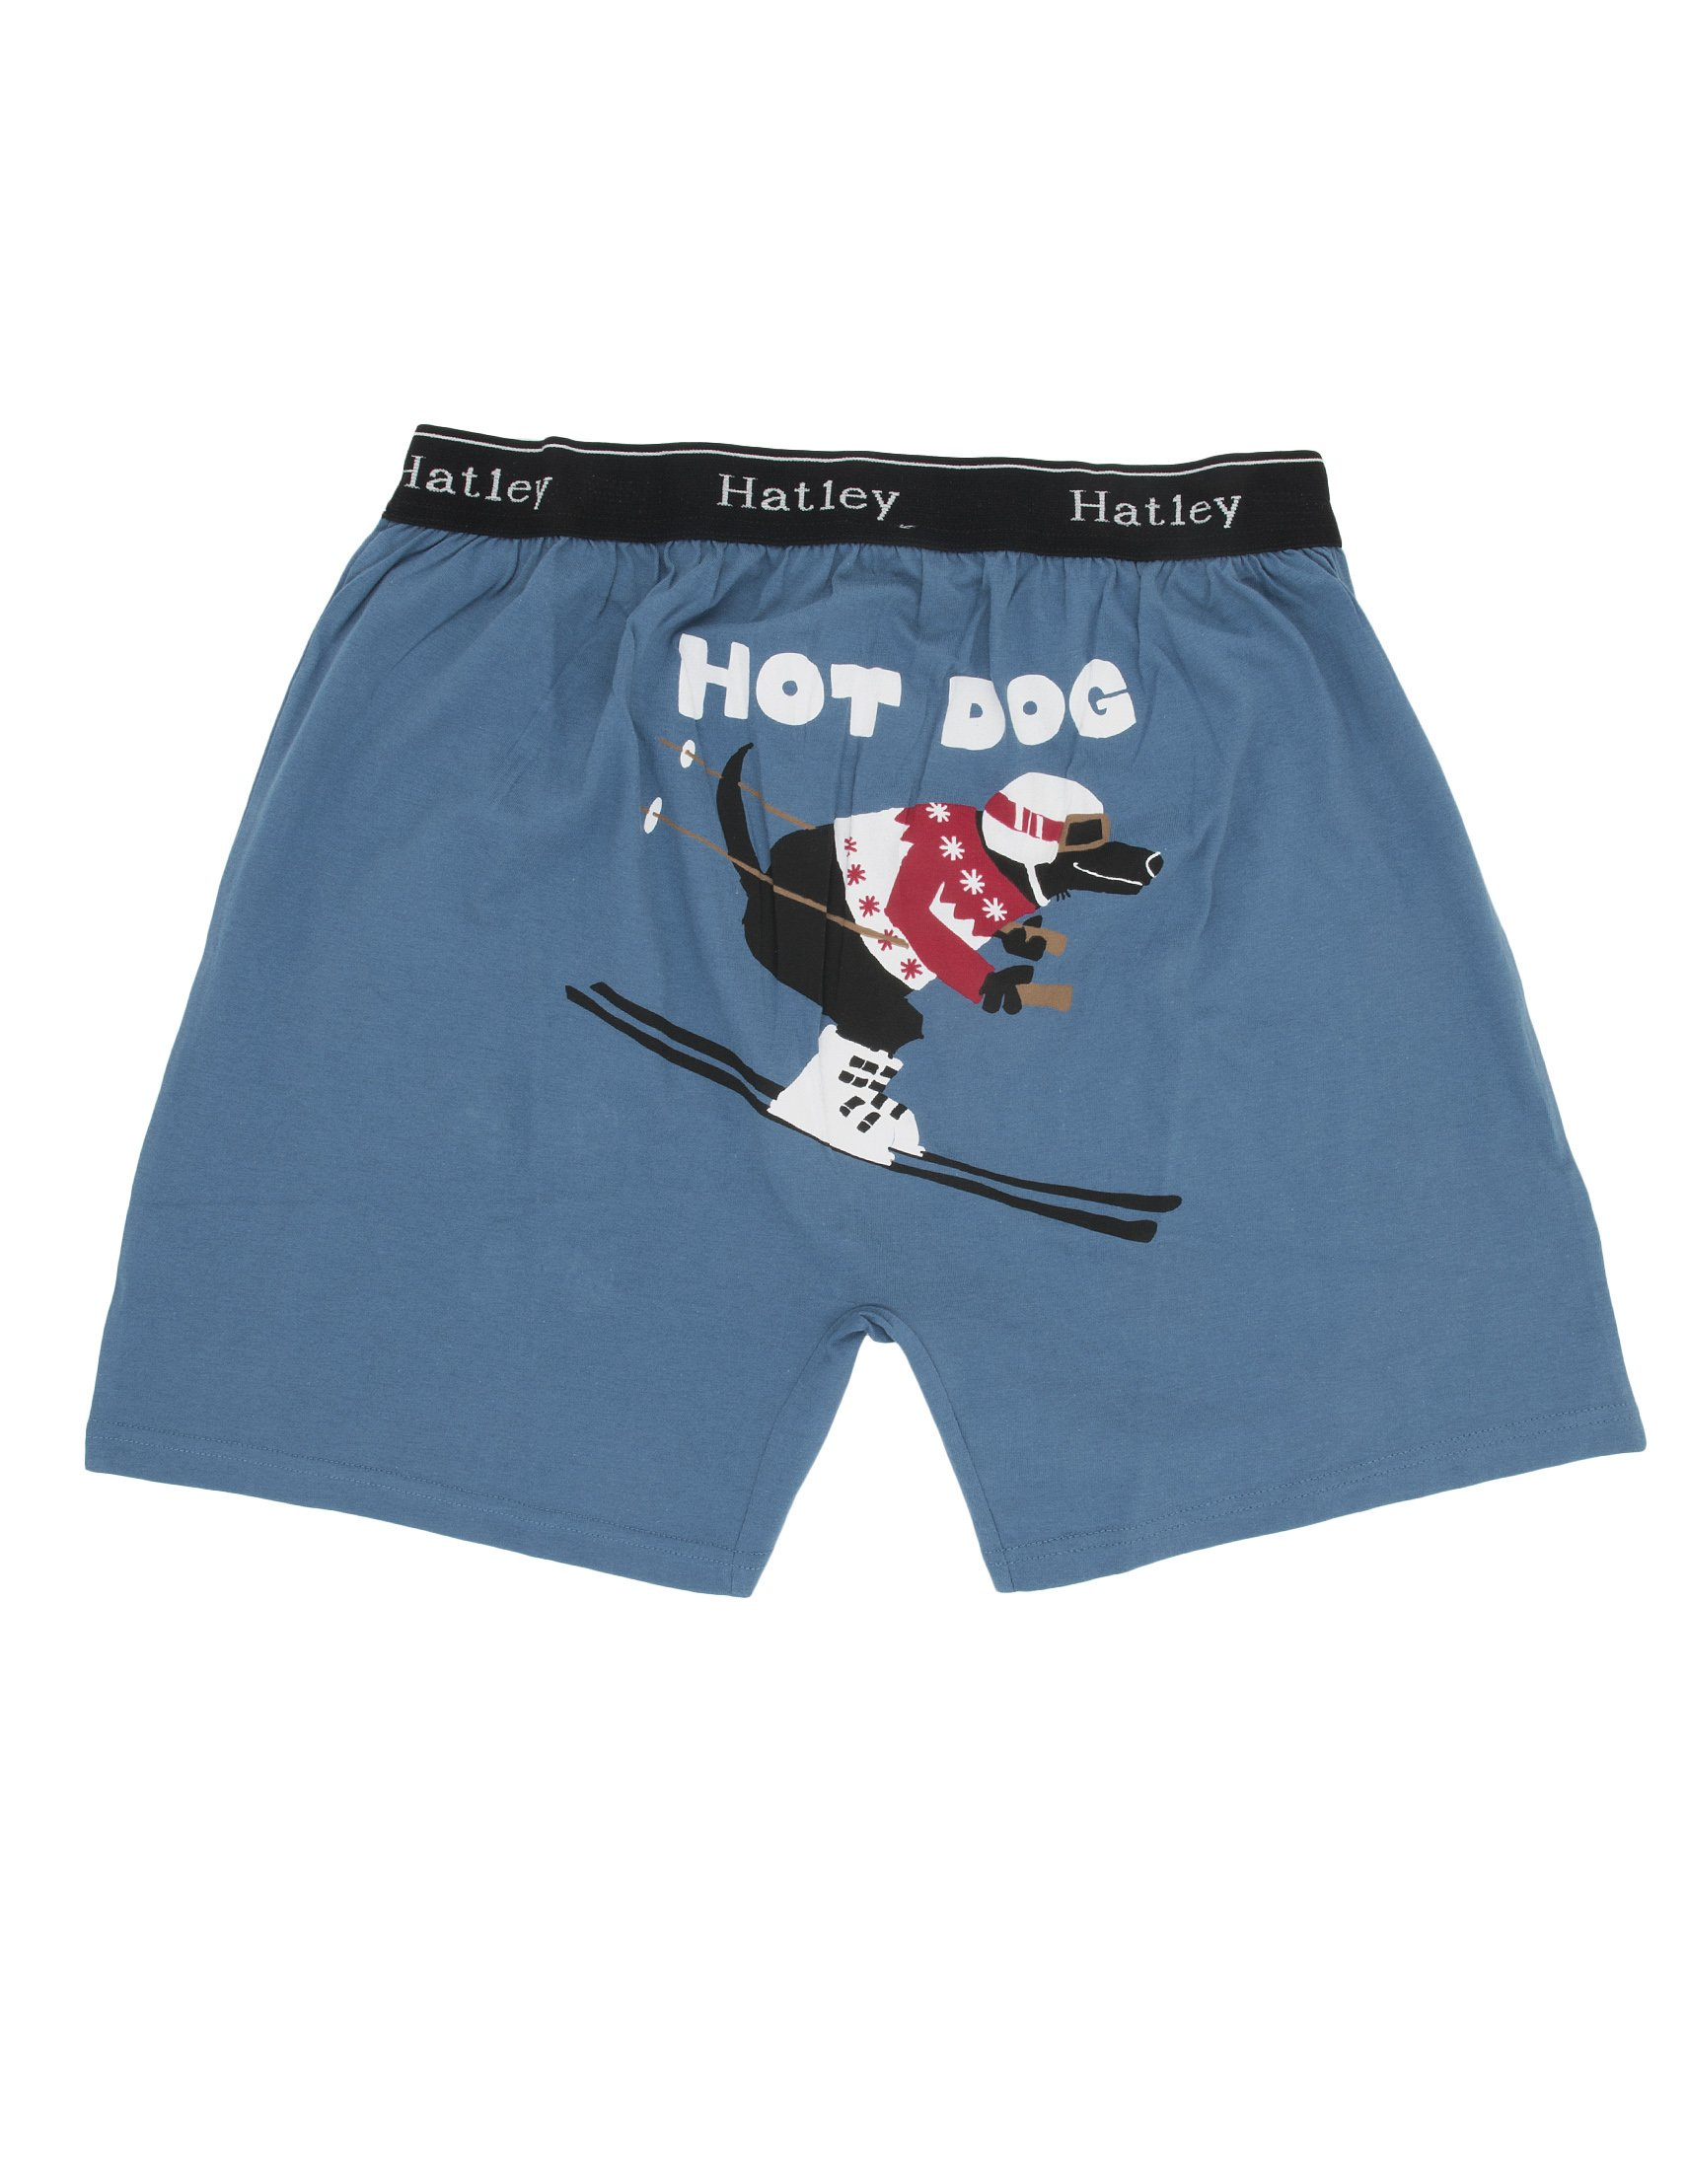 Hatley ''Hot Dog'' Men's Cotton Jersey Boxer Shorts (Small)